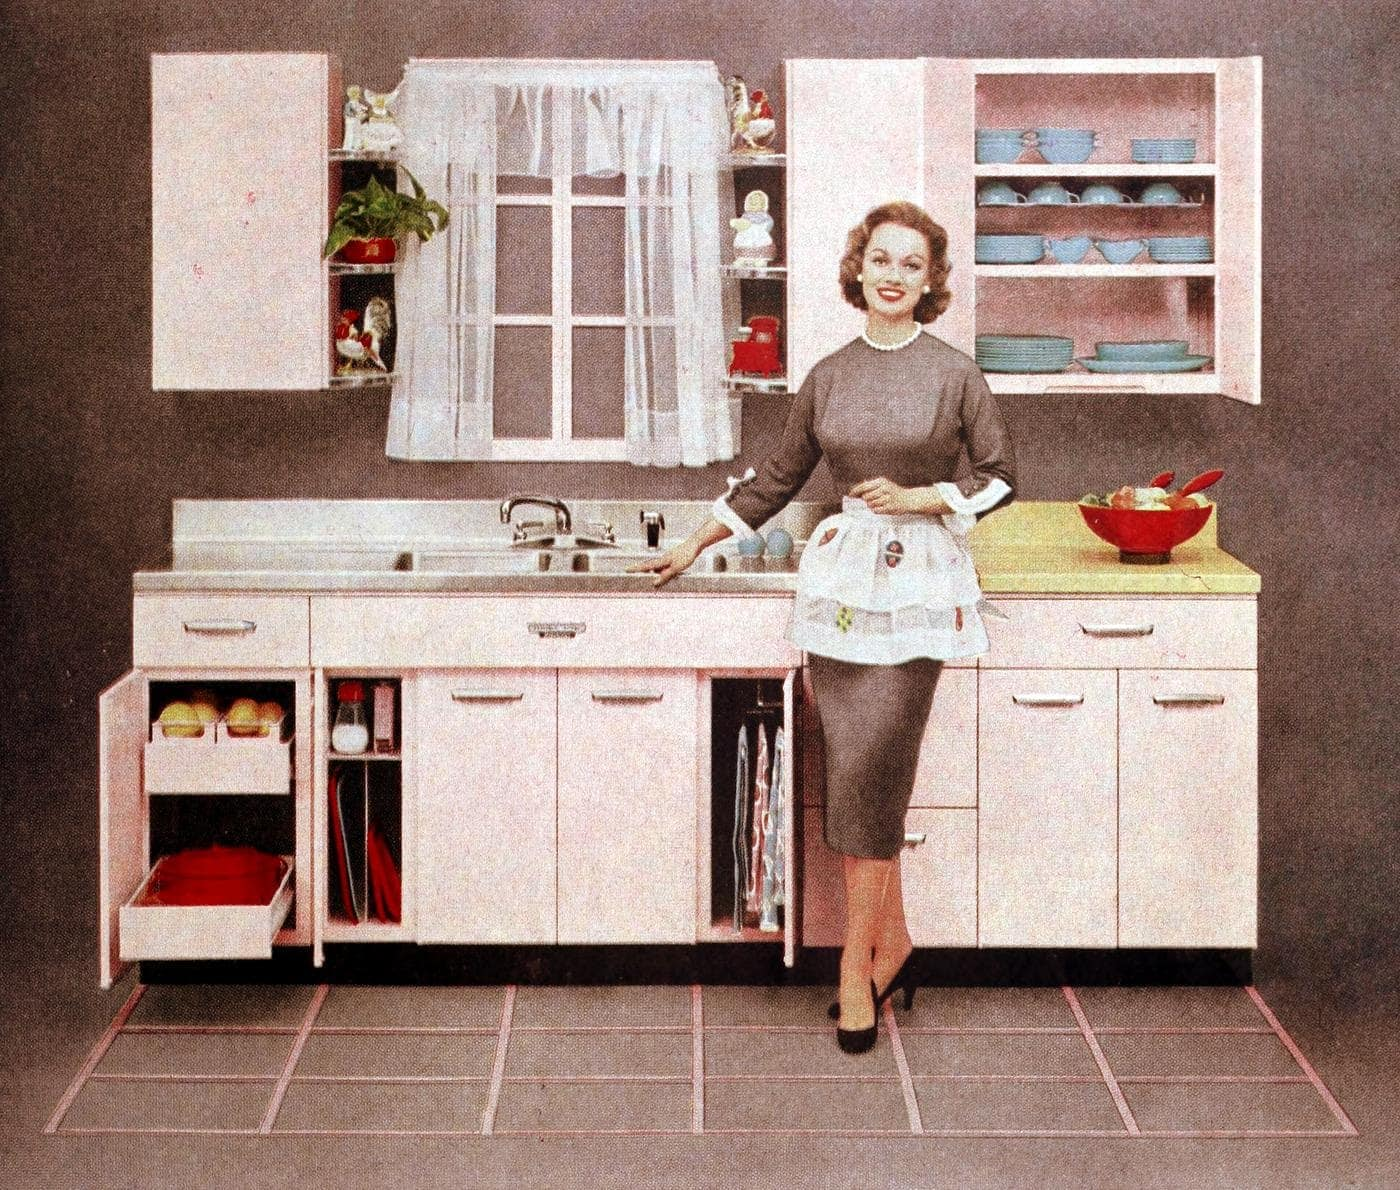 Pale pink 50s model kitchen decor with brown walls